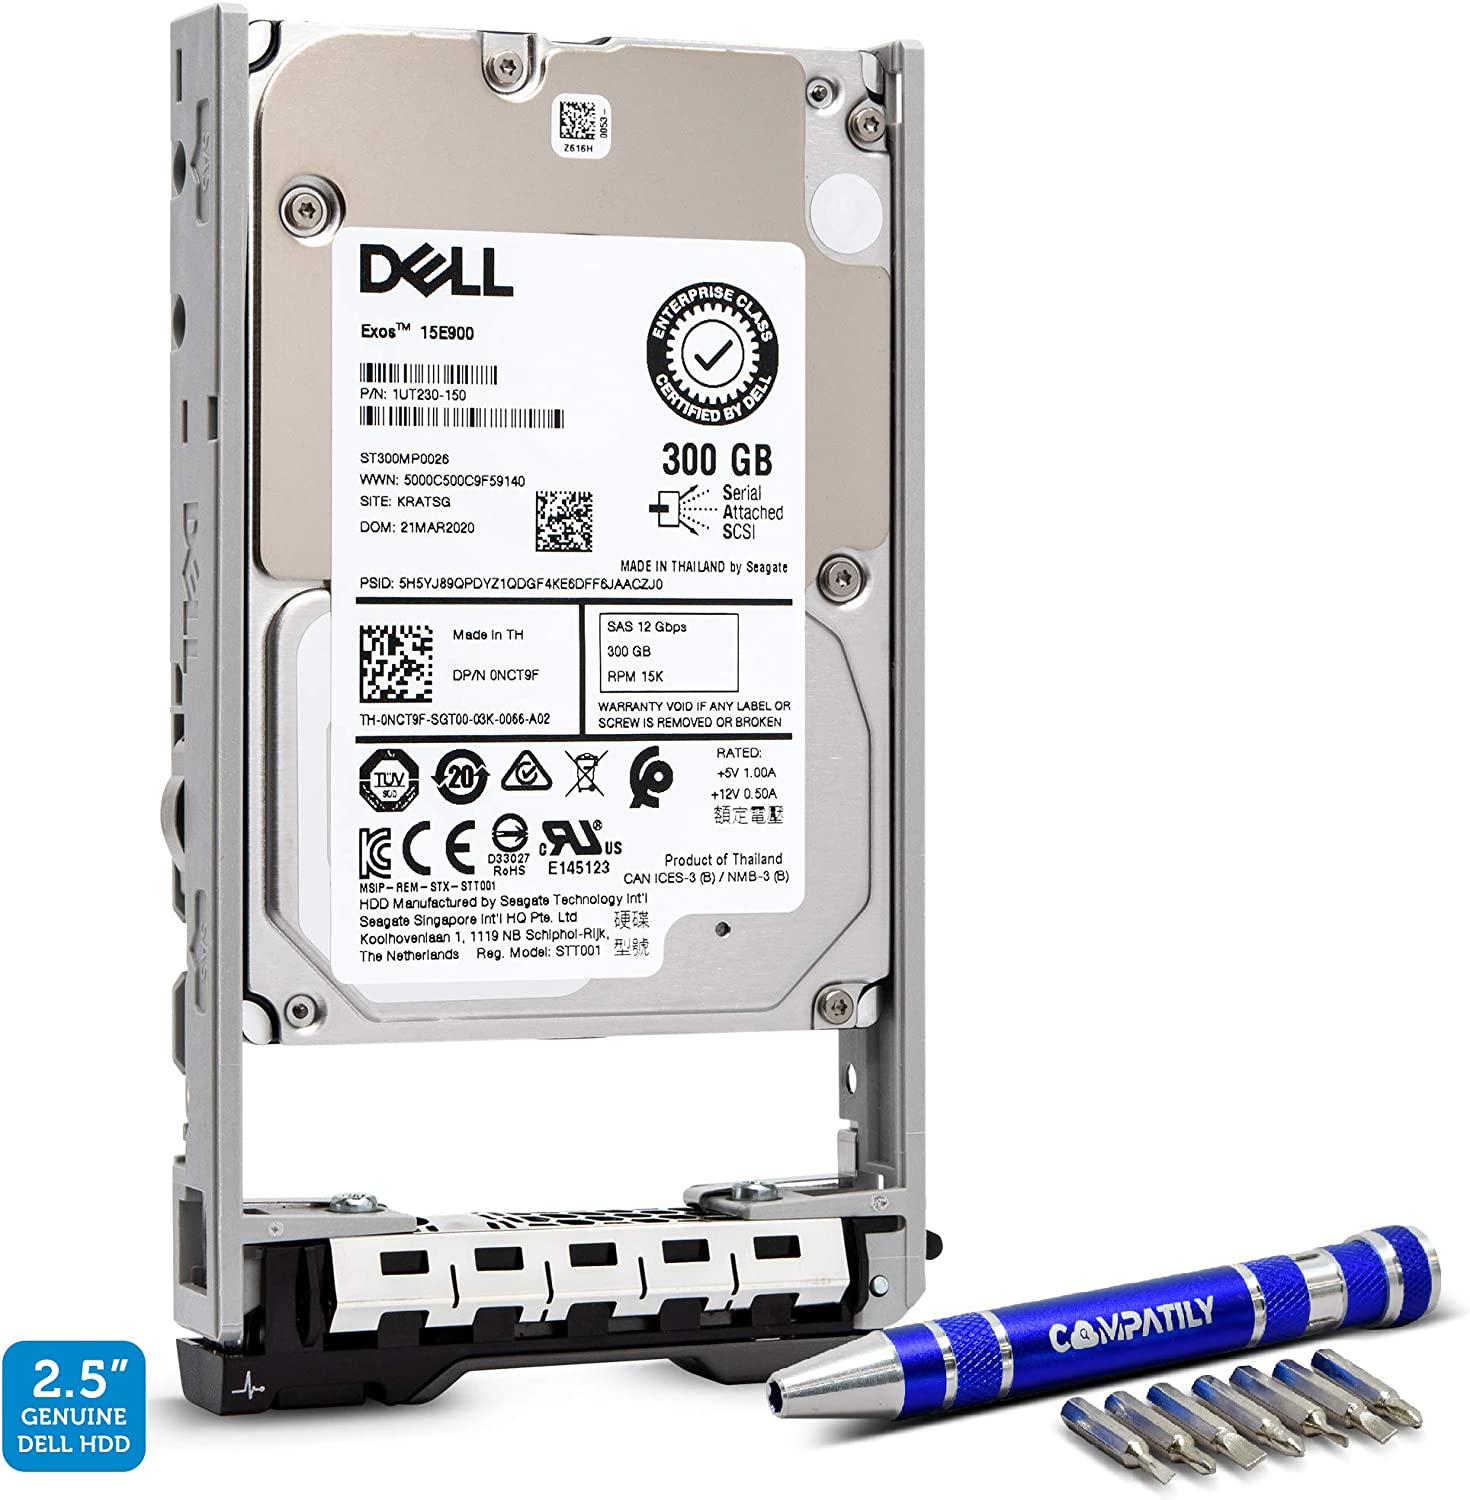 Dell 400-AJRK 300GB 15K RPM SAS 12Gbps 2.5-in 13G Hard Drive Bundle with Compatily Screwdriver | Enterprise Hard Drive Compatible in 13th Generation SFF PowerEdge Servers